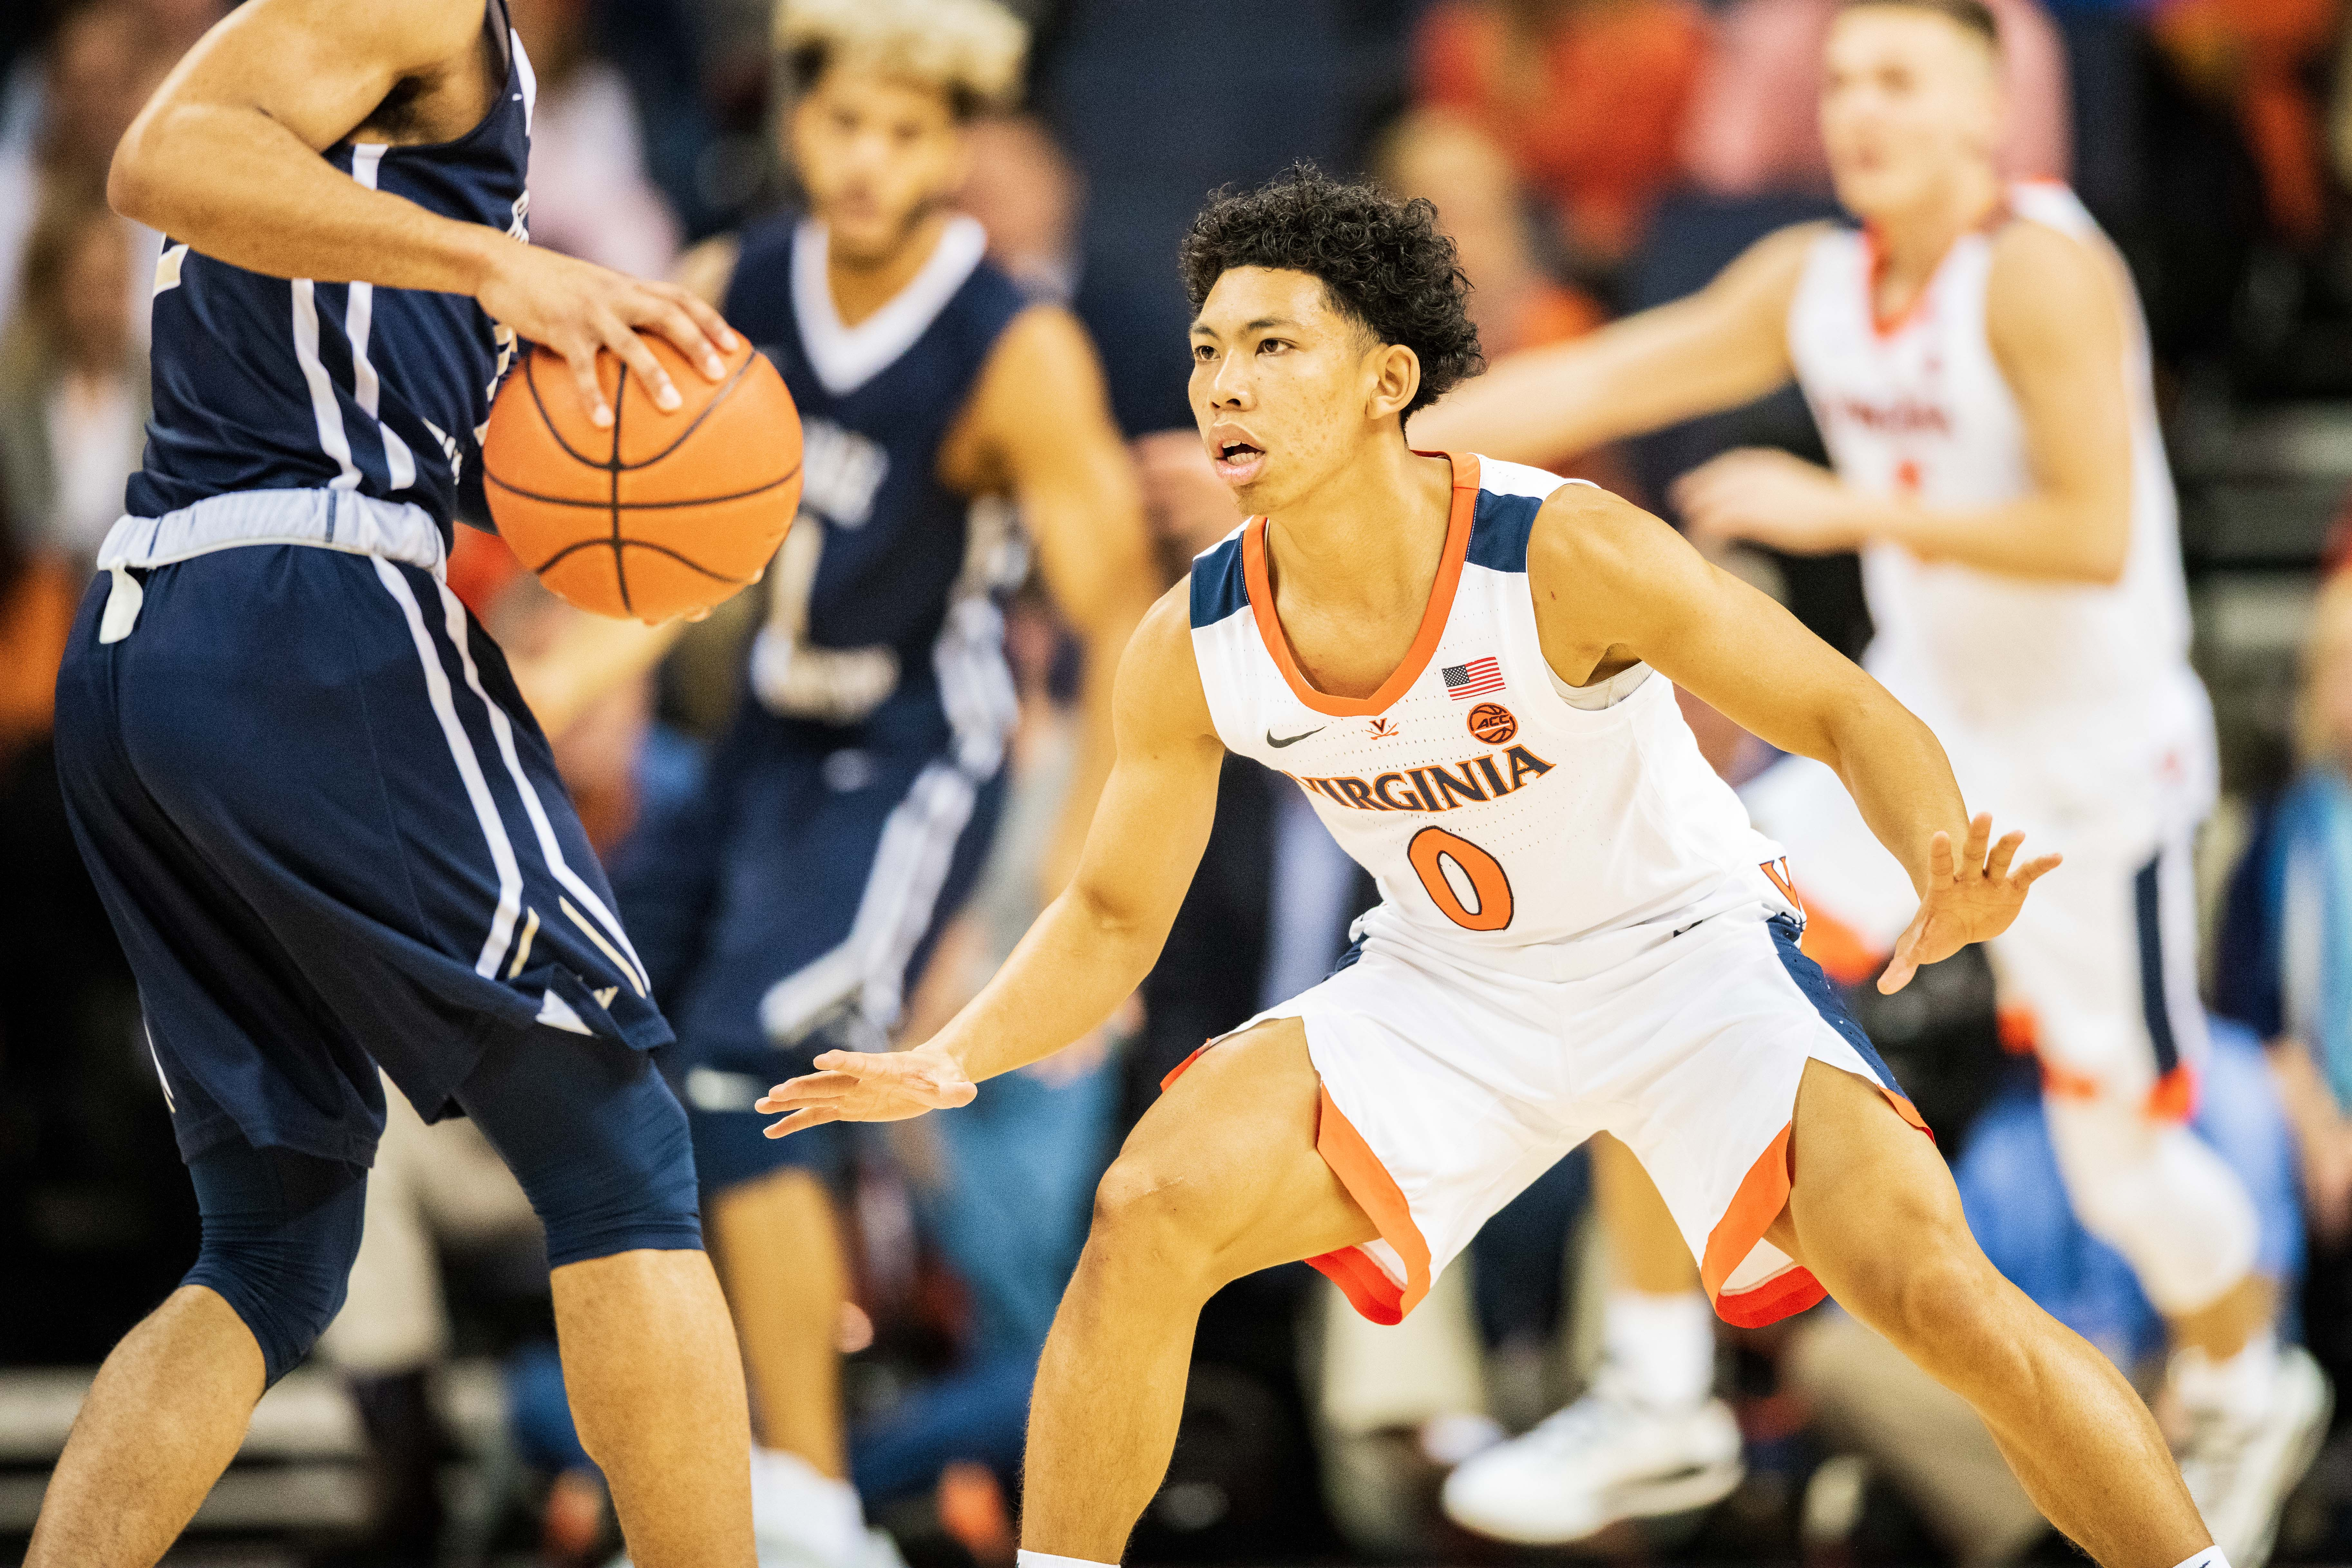 Virginia Cavaliers guard Kihei Clark (0) during the NCAA Basketball game between the George Washington Colonials and the Virginia Cavaliers at John Paul Jones Arena on Sunday November 11, 2018 in Charlottesville, VA. Jacob Kupferman/CSM(Credit Image: © Jacob Kupferman/CSM via ZUMA Wire)